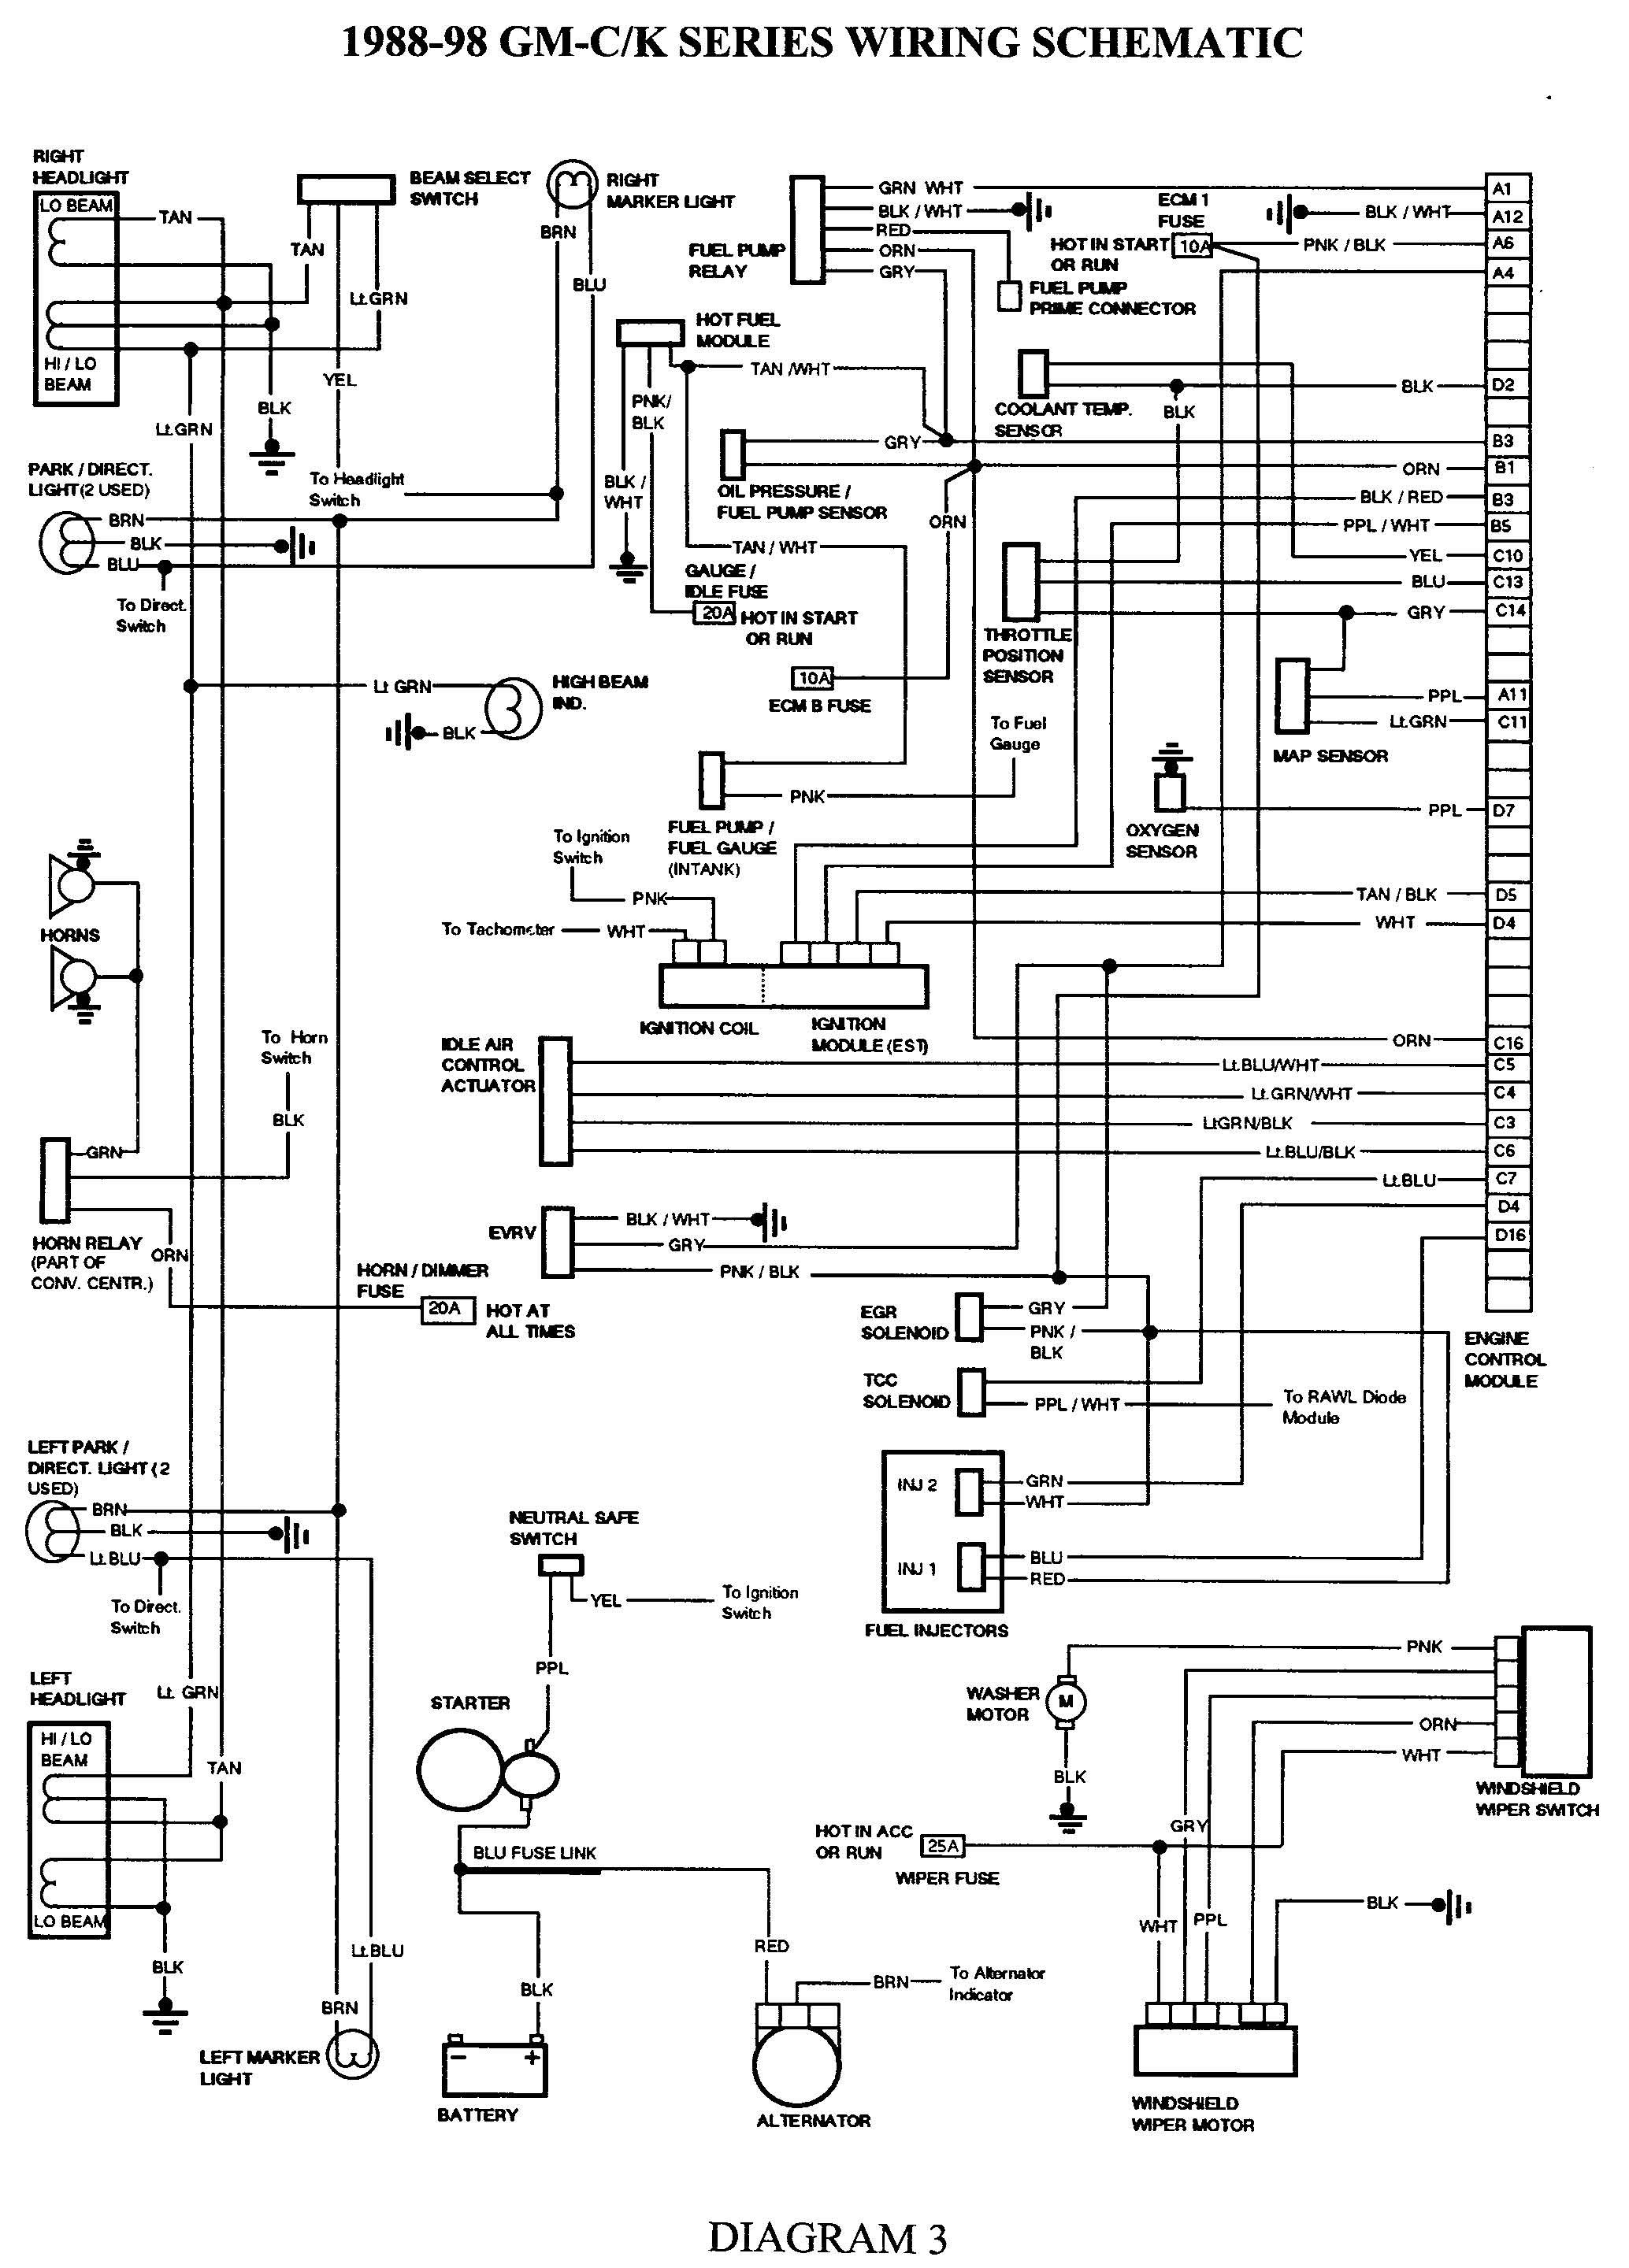 1994 chevy astro wiring diagram free download wiring diagram data rh 14 8 reisen fuer meister de